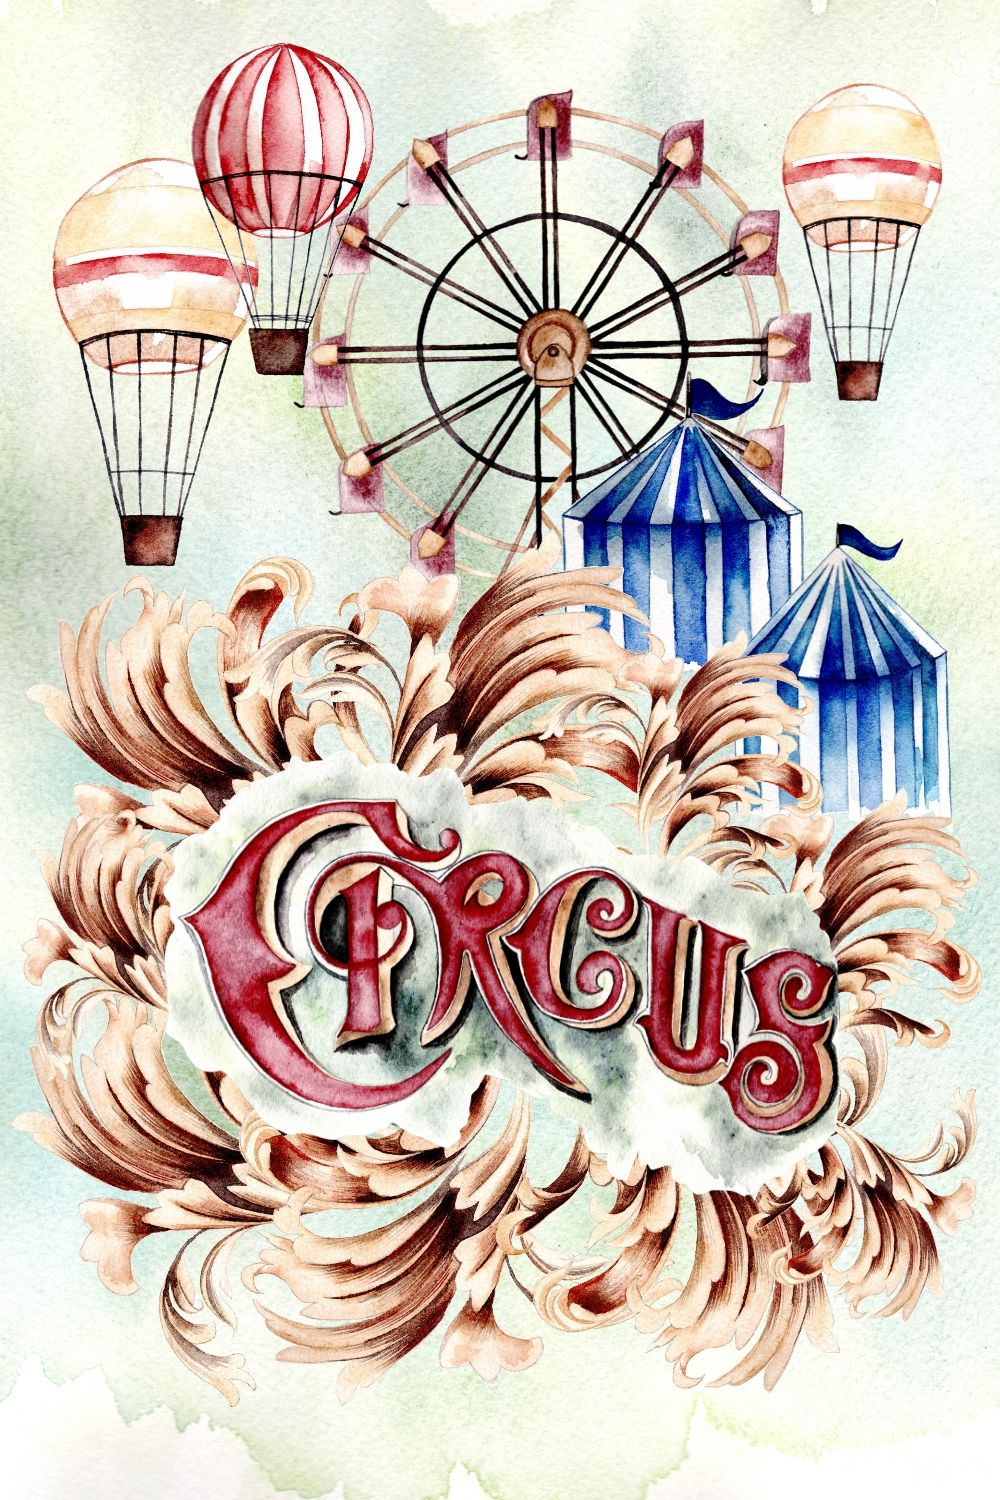 Circus custom invitation design with a ferris wheel and hot air balloons